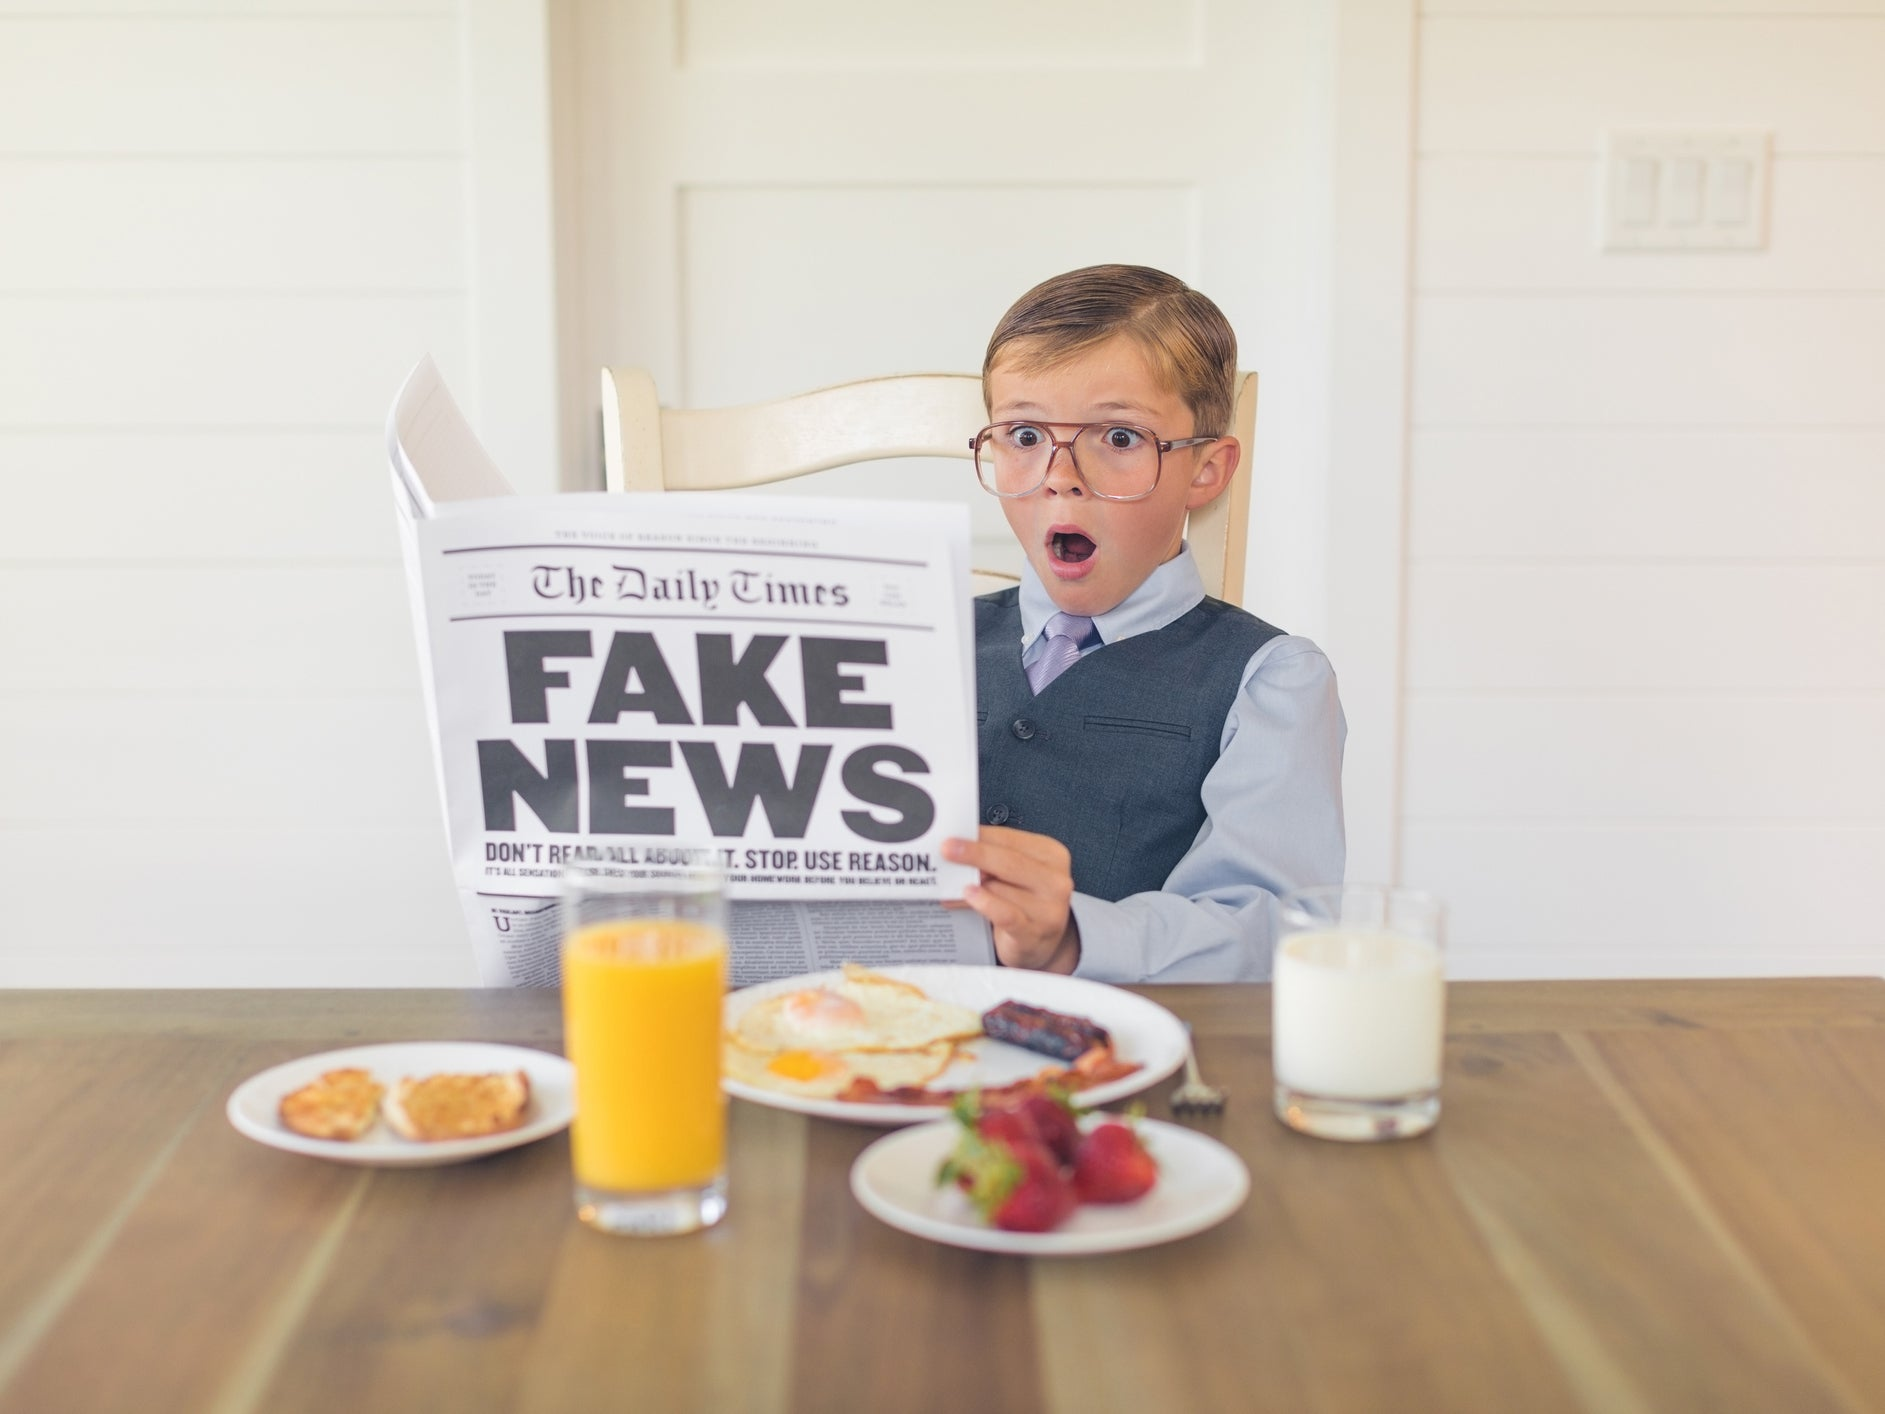 Schools to teach children about fake news and 'confirmation bias', g…